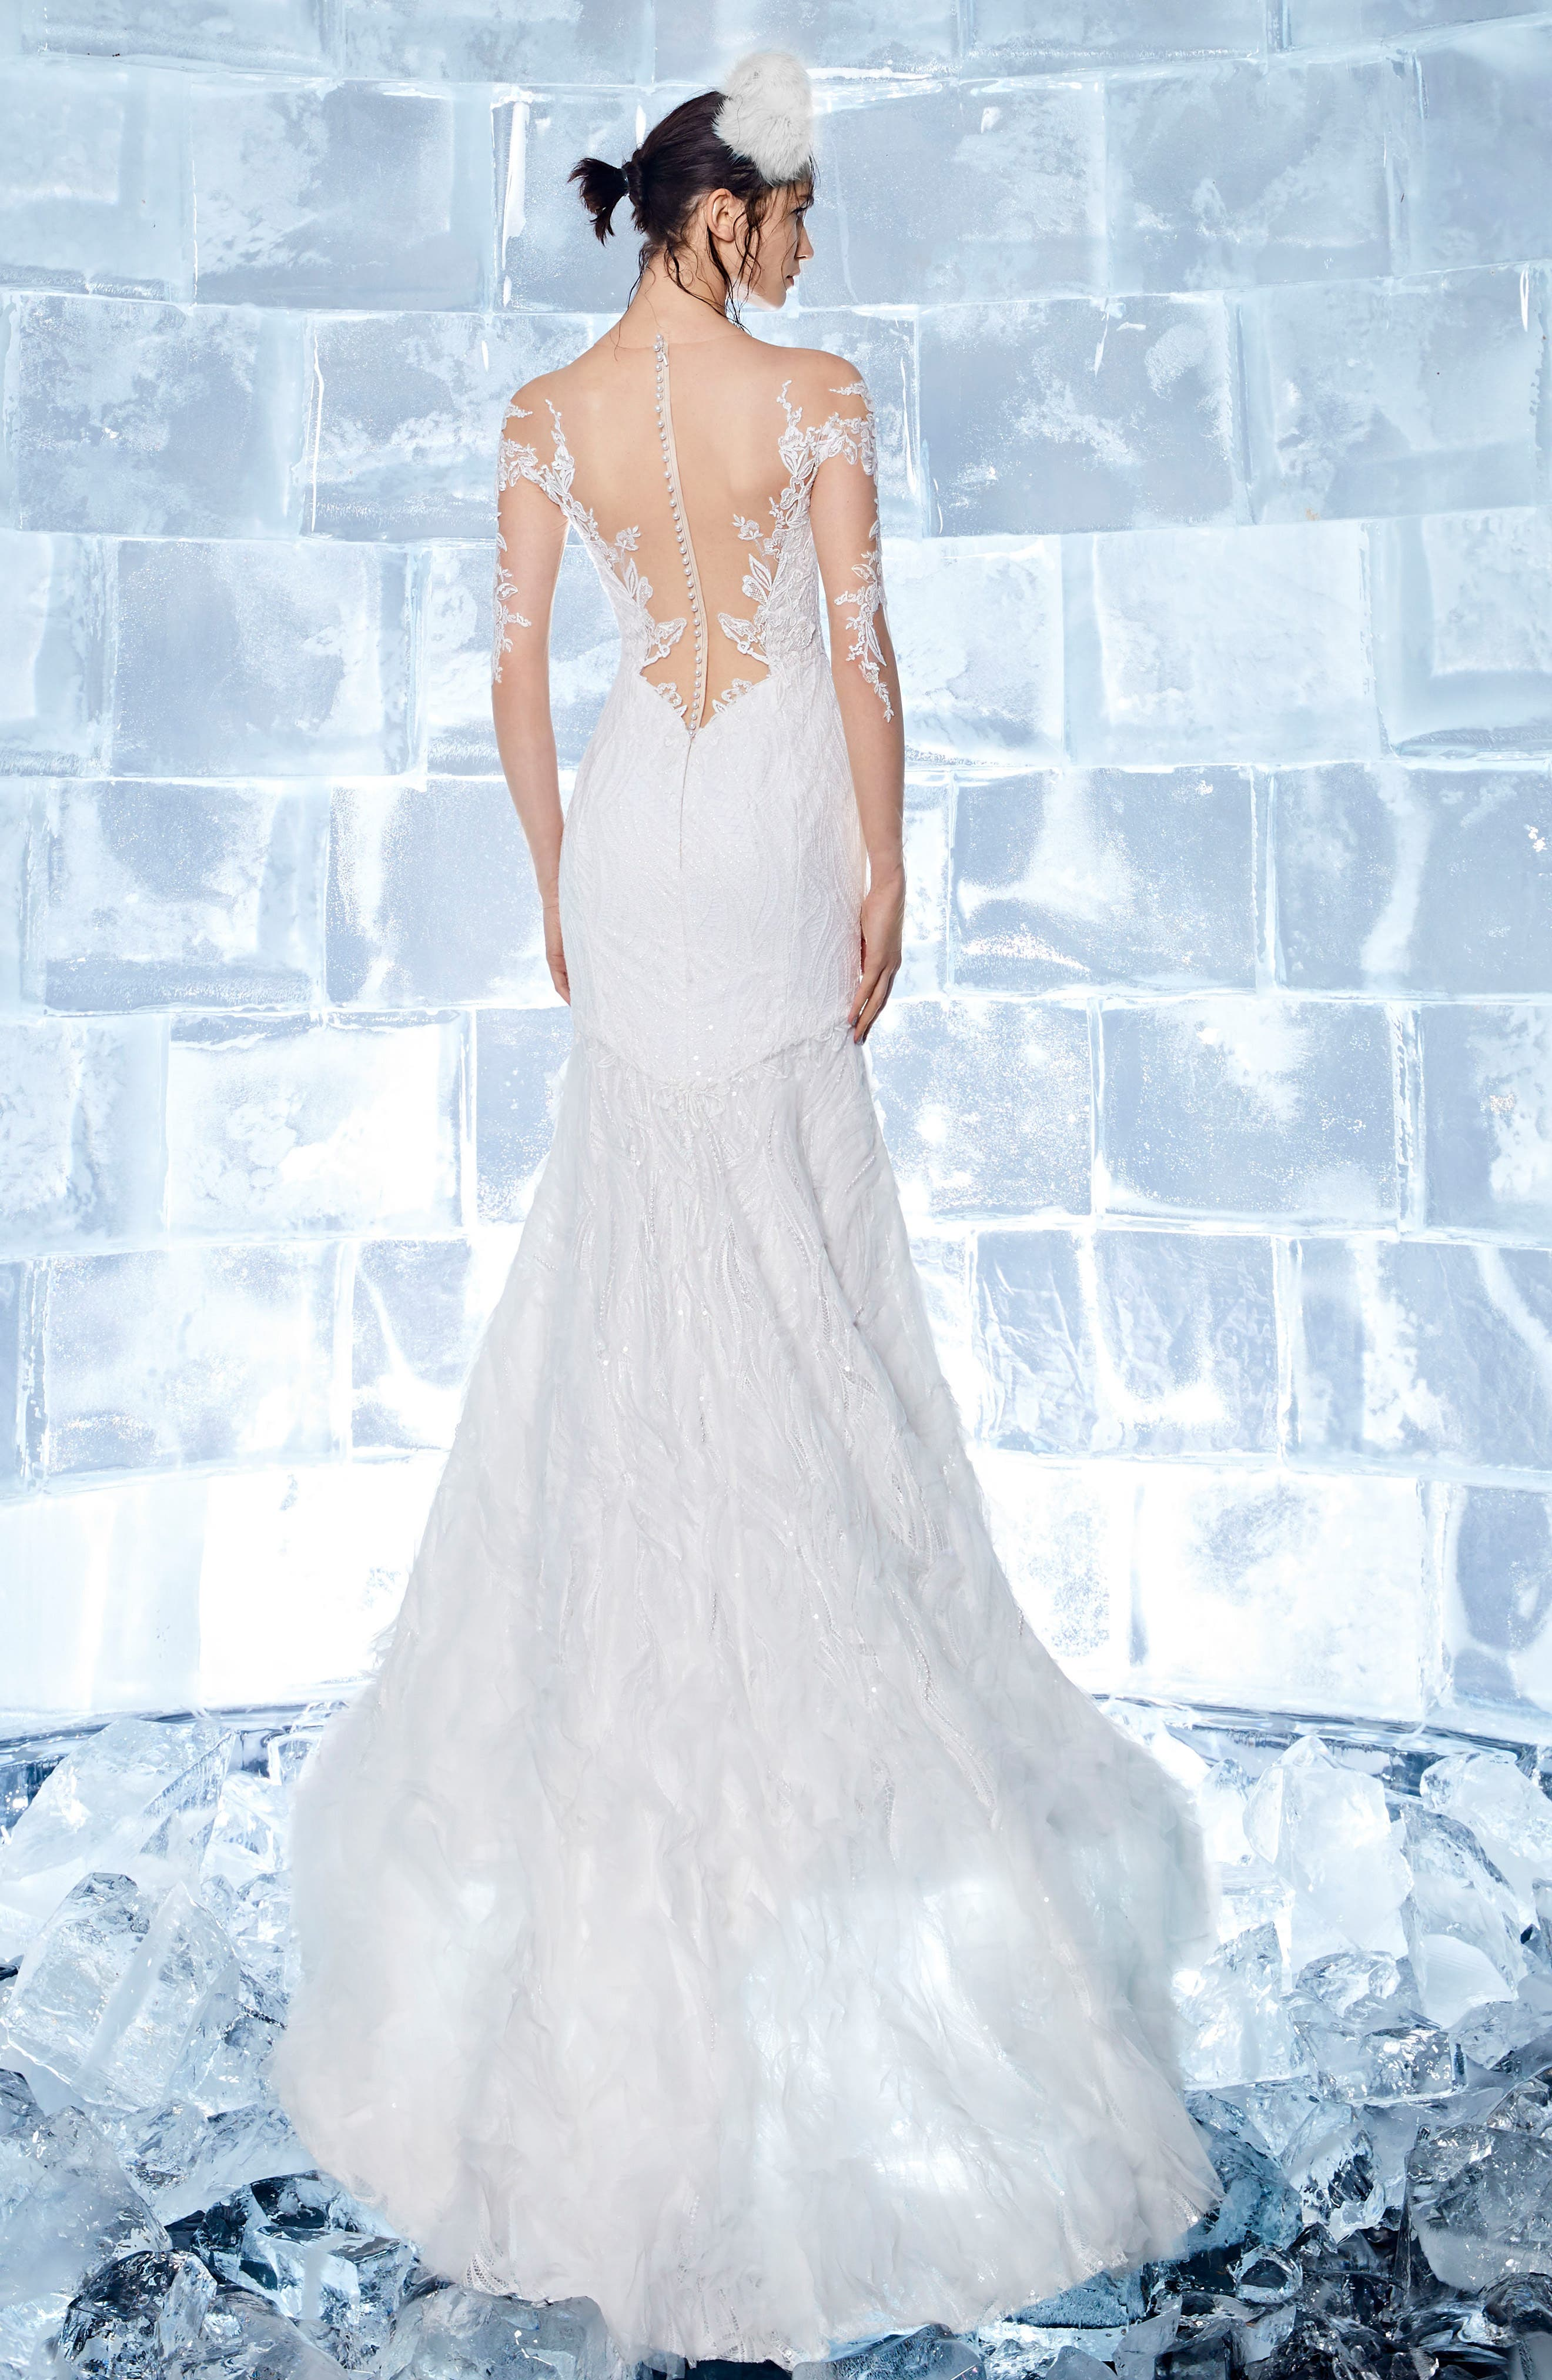 INES BY INES DI SANTO,                             Garnet Embroidered Illusion Mermaid Gown,                             Alternate thumbnail 2, color,                             OFF WHITE/ SOFT NUDE